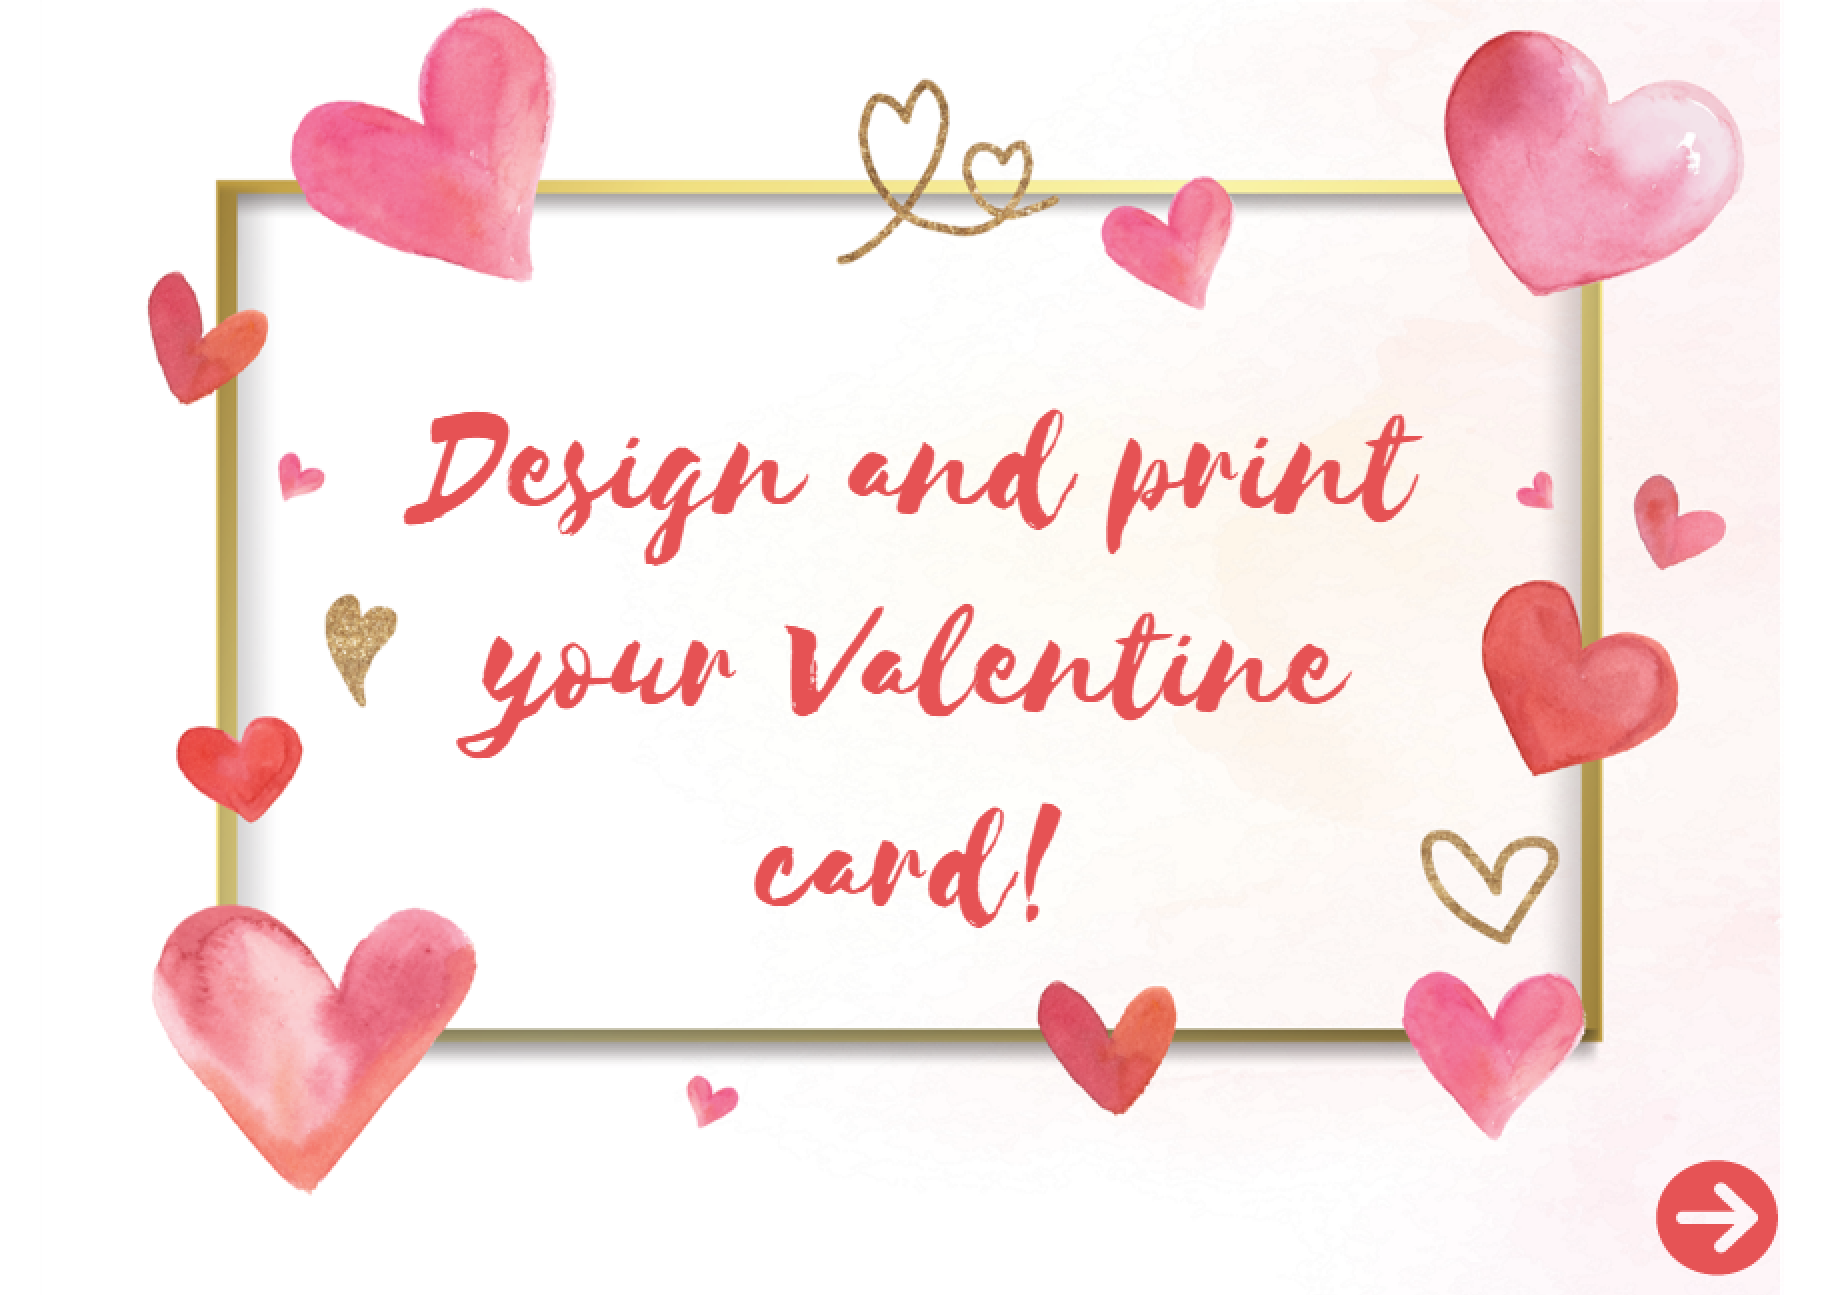 Design and print your valentine card